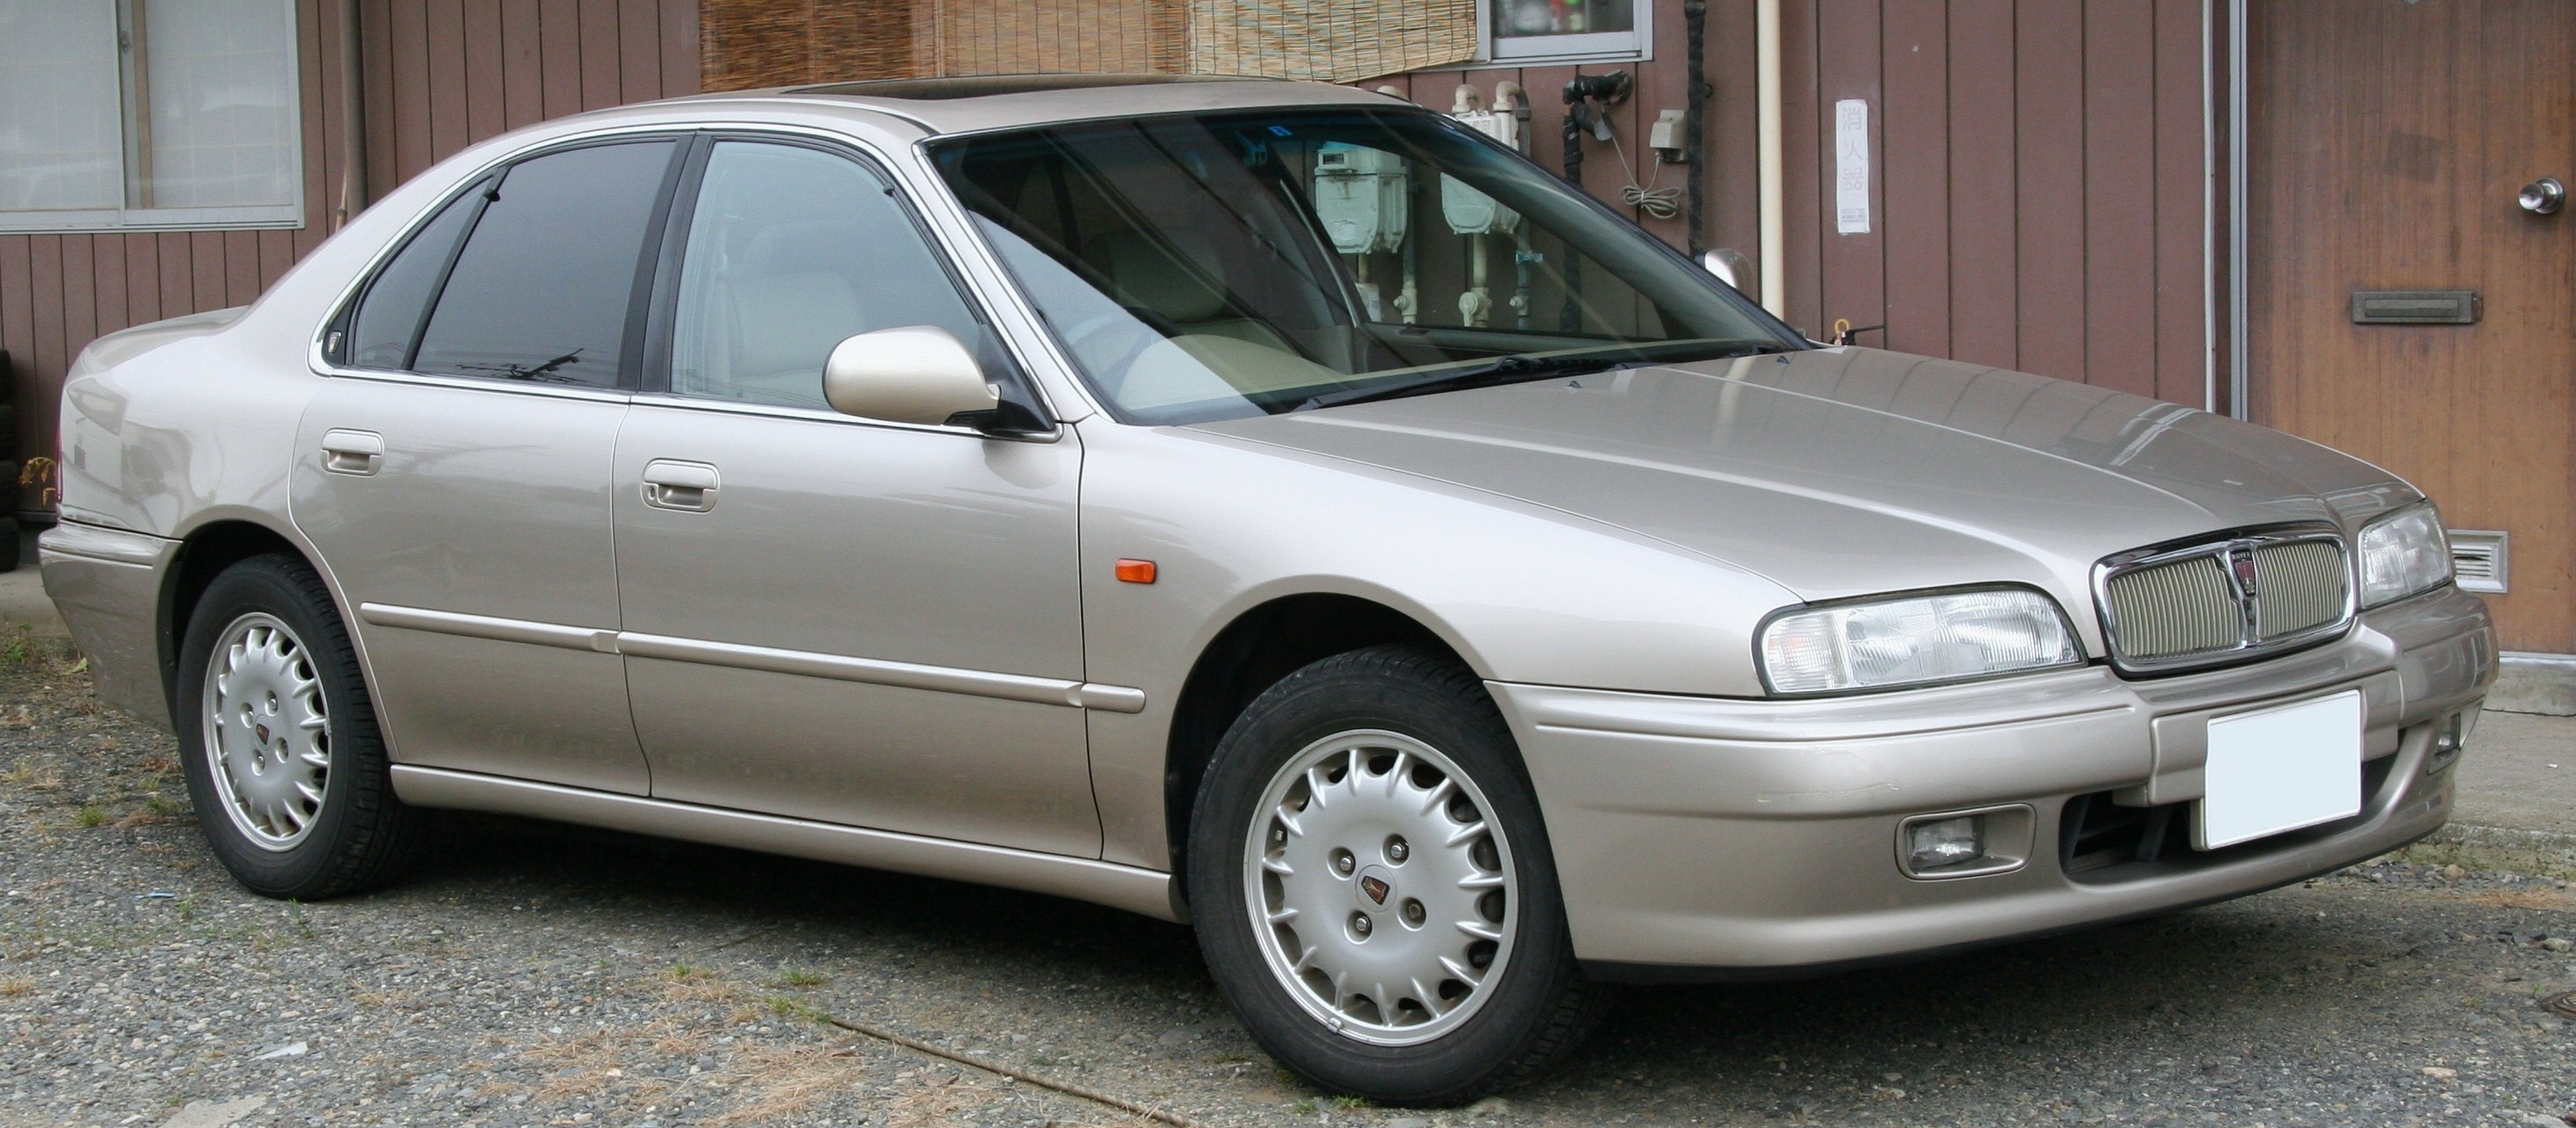 File Rover 600 01 Jpg Wikimedia Commons